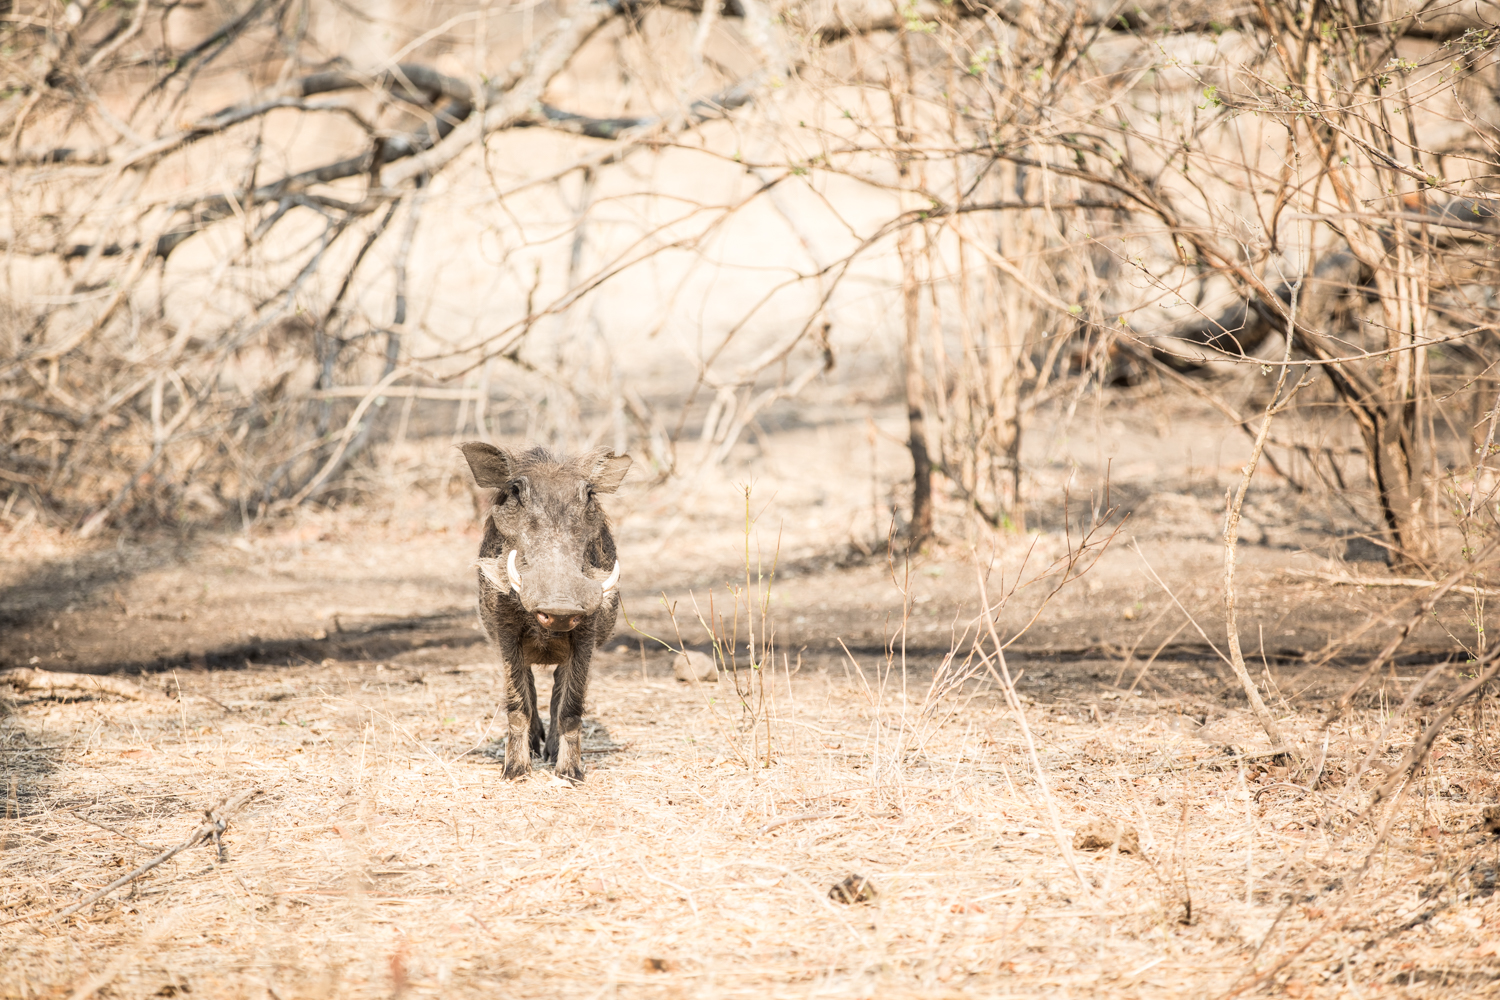 A warthog in Majete (credit Nico Wills)